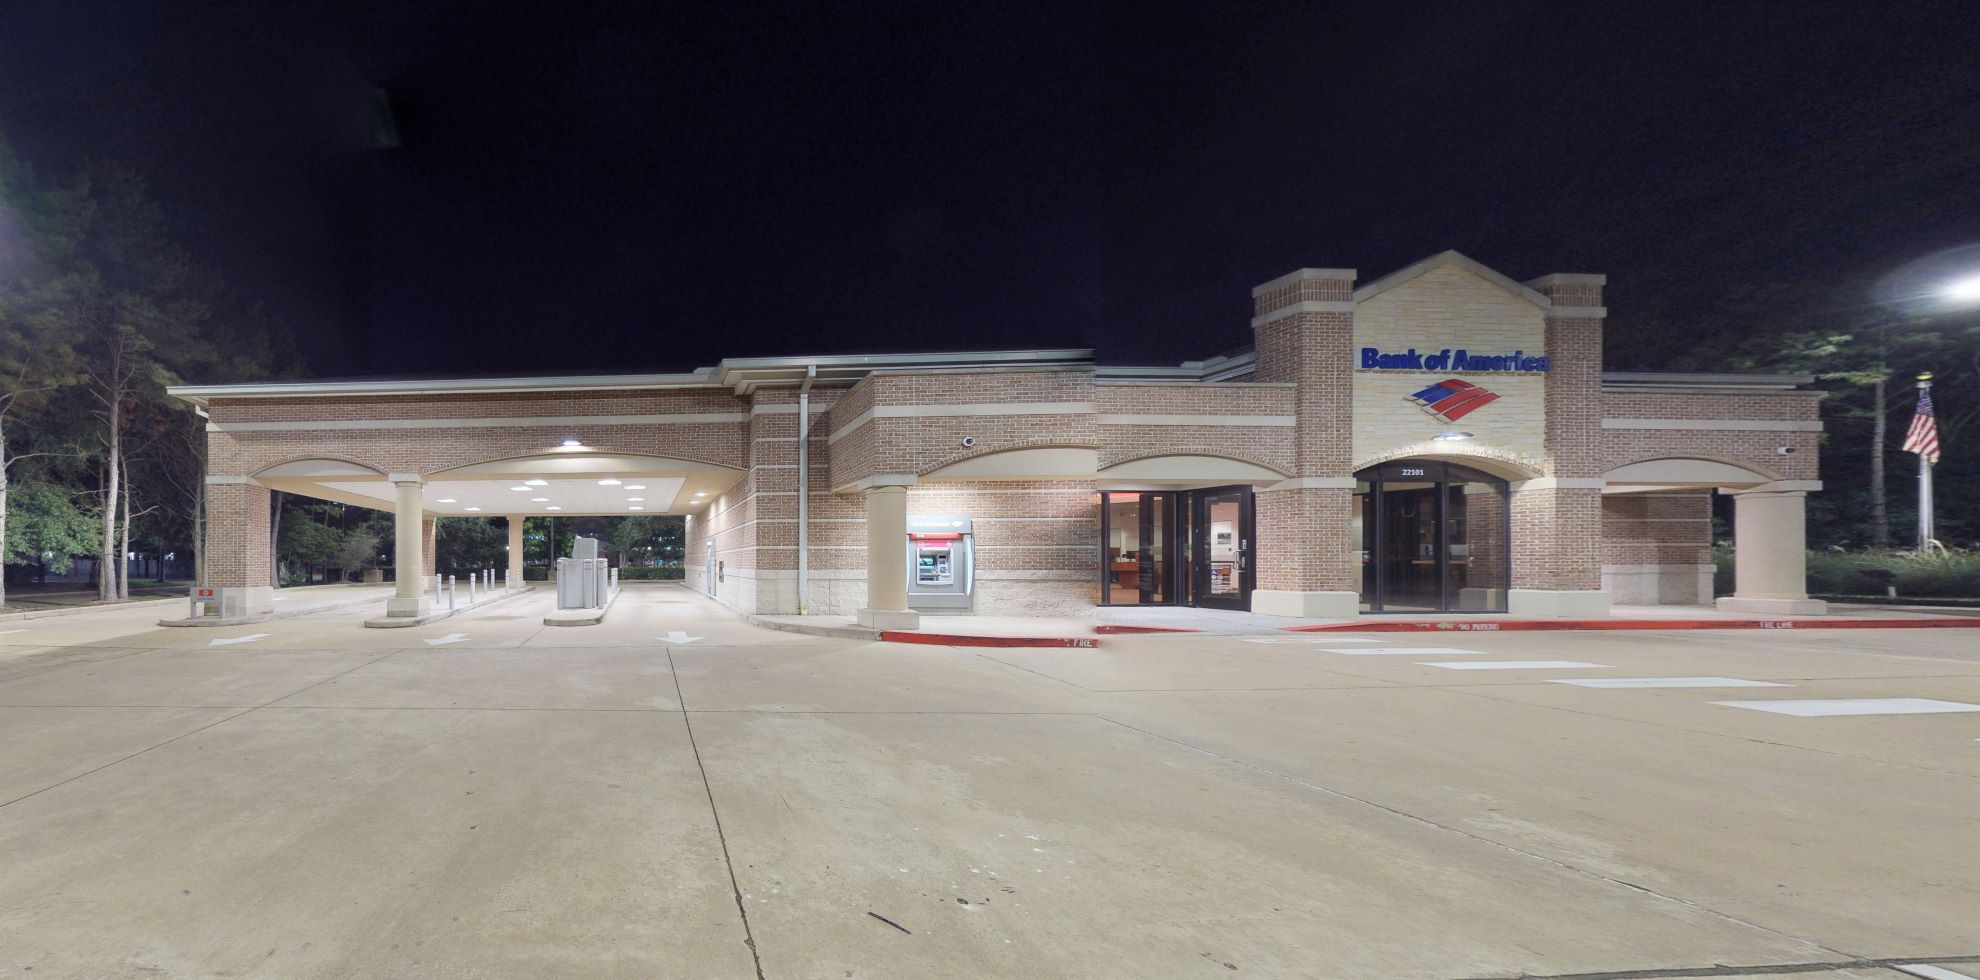 Bank of America financial center with drive-thru ATM | 22101 Westheimer Pkwy, Katy, TX 77450